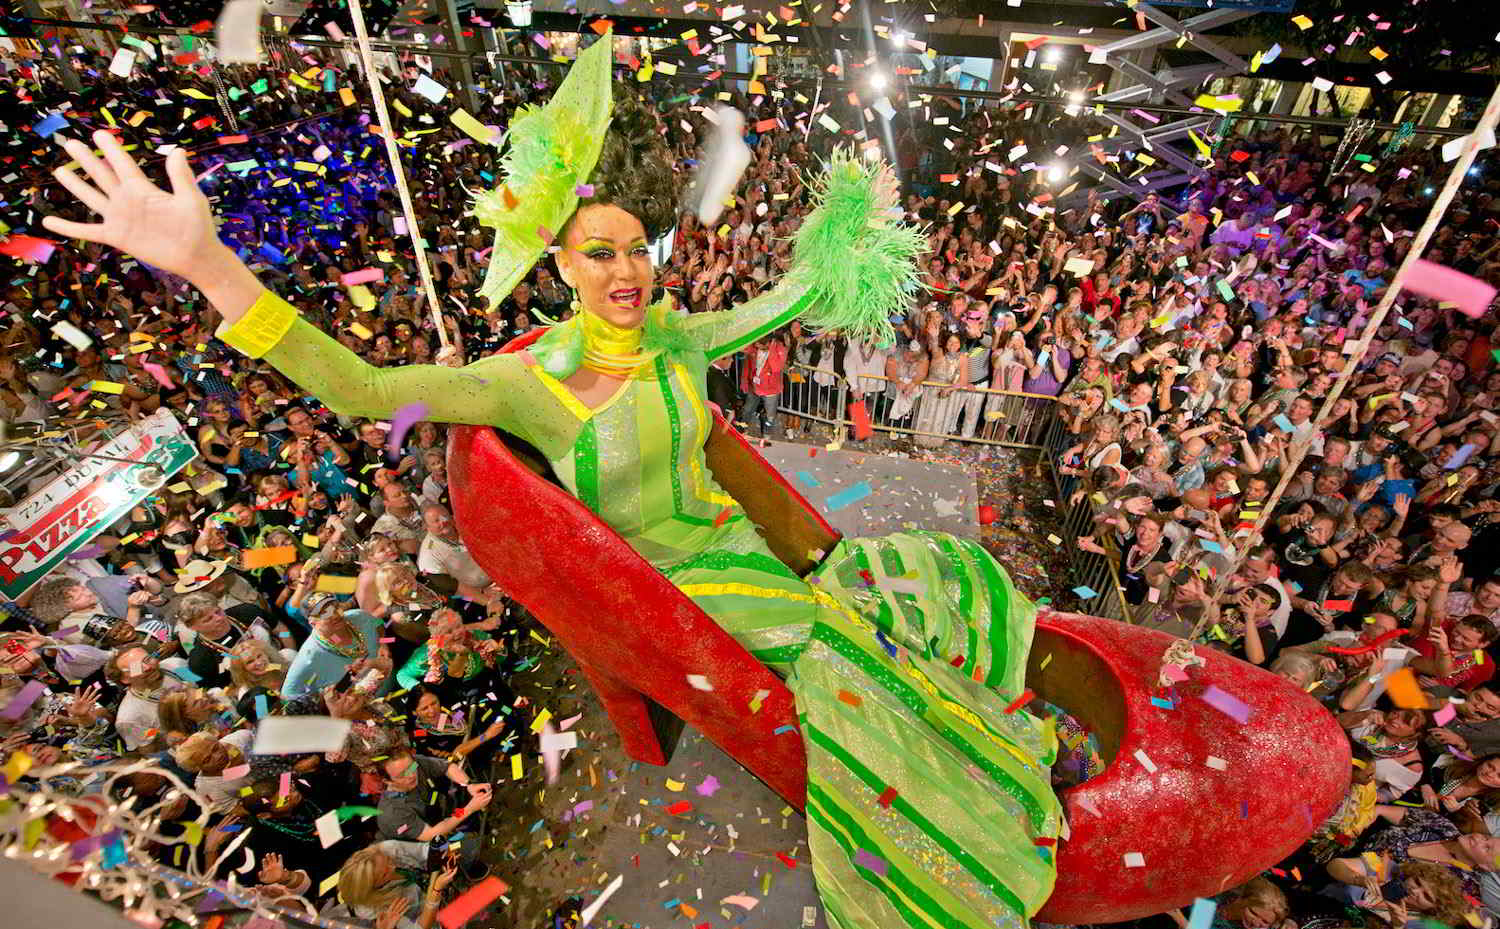 Of course gay Key West has the most camp New Year's Eve party, with a shoe drop complete with a drag queen inside it!